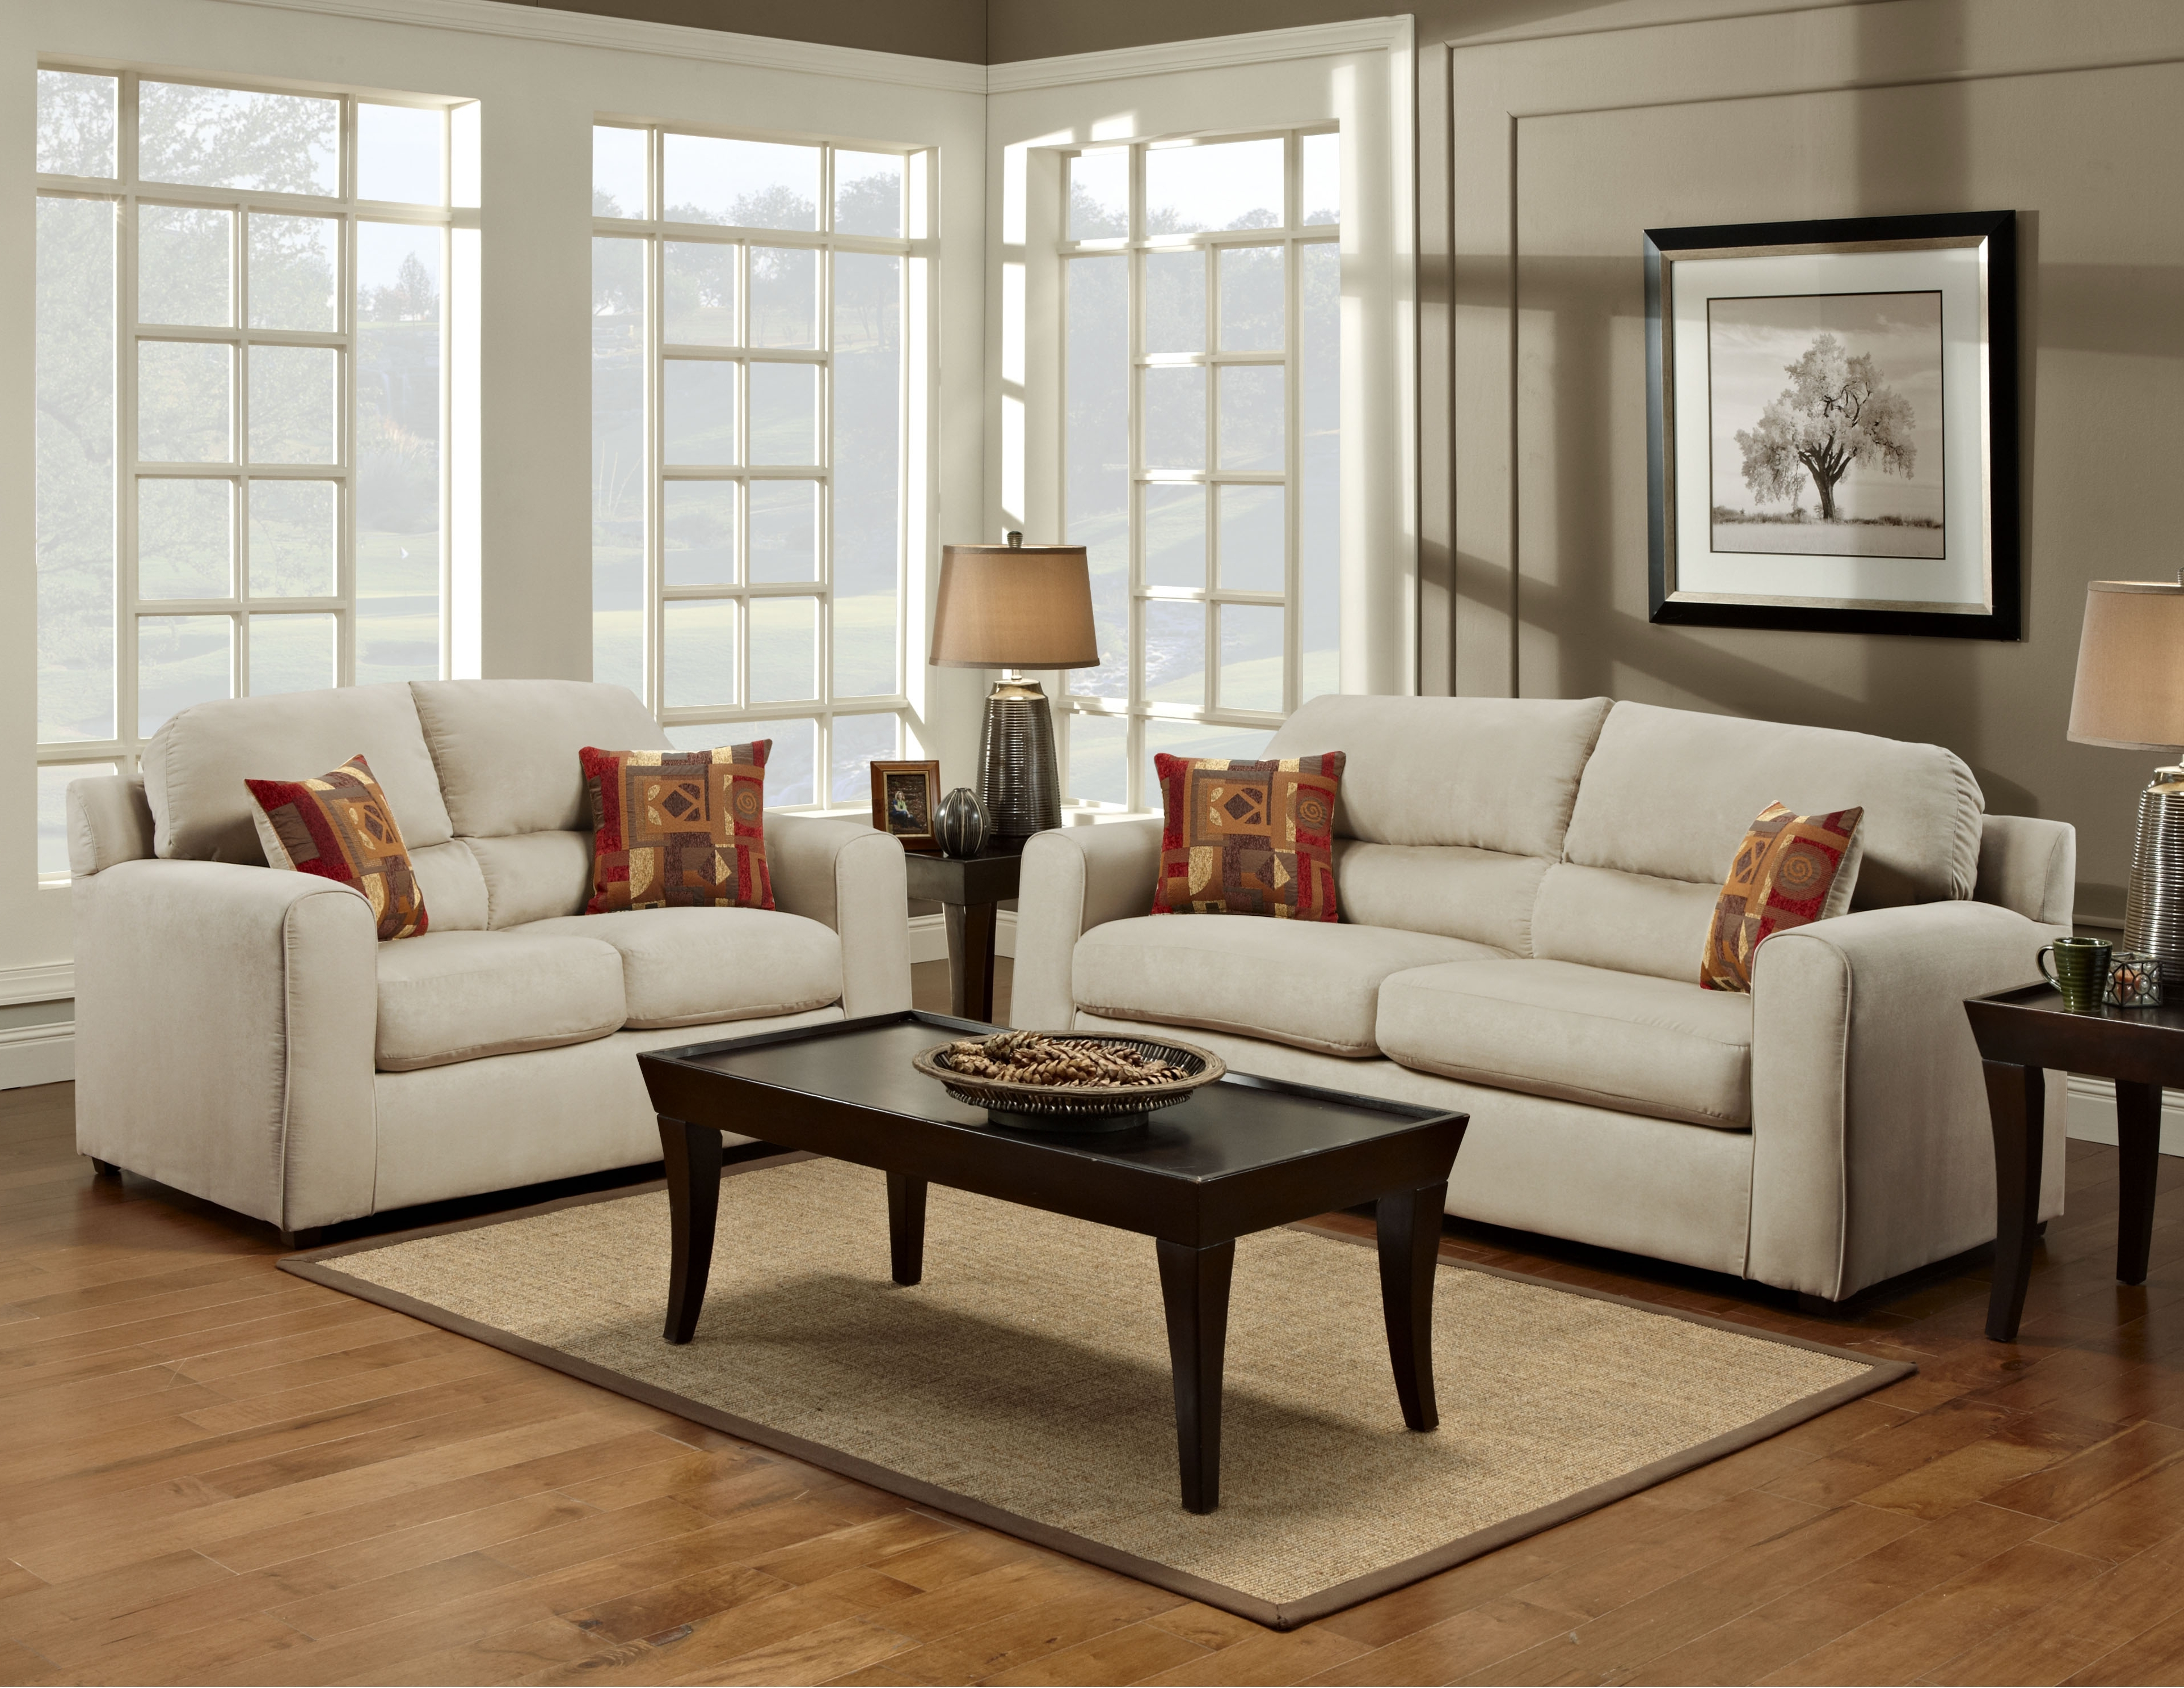 Well Liked Furniture: Miraculous Nashville Furniture With Nice Design For Within Murfreesboro Tn Sectional Sofas (View 14 of 20)